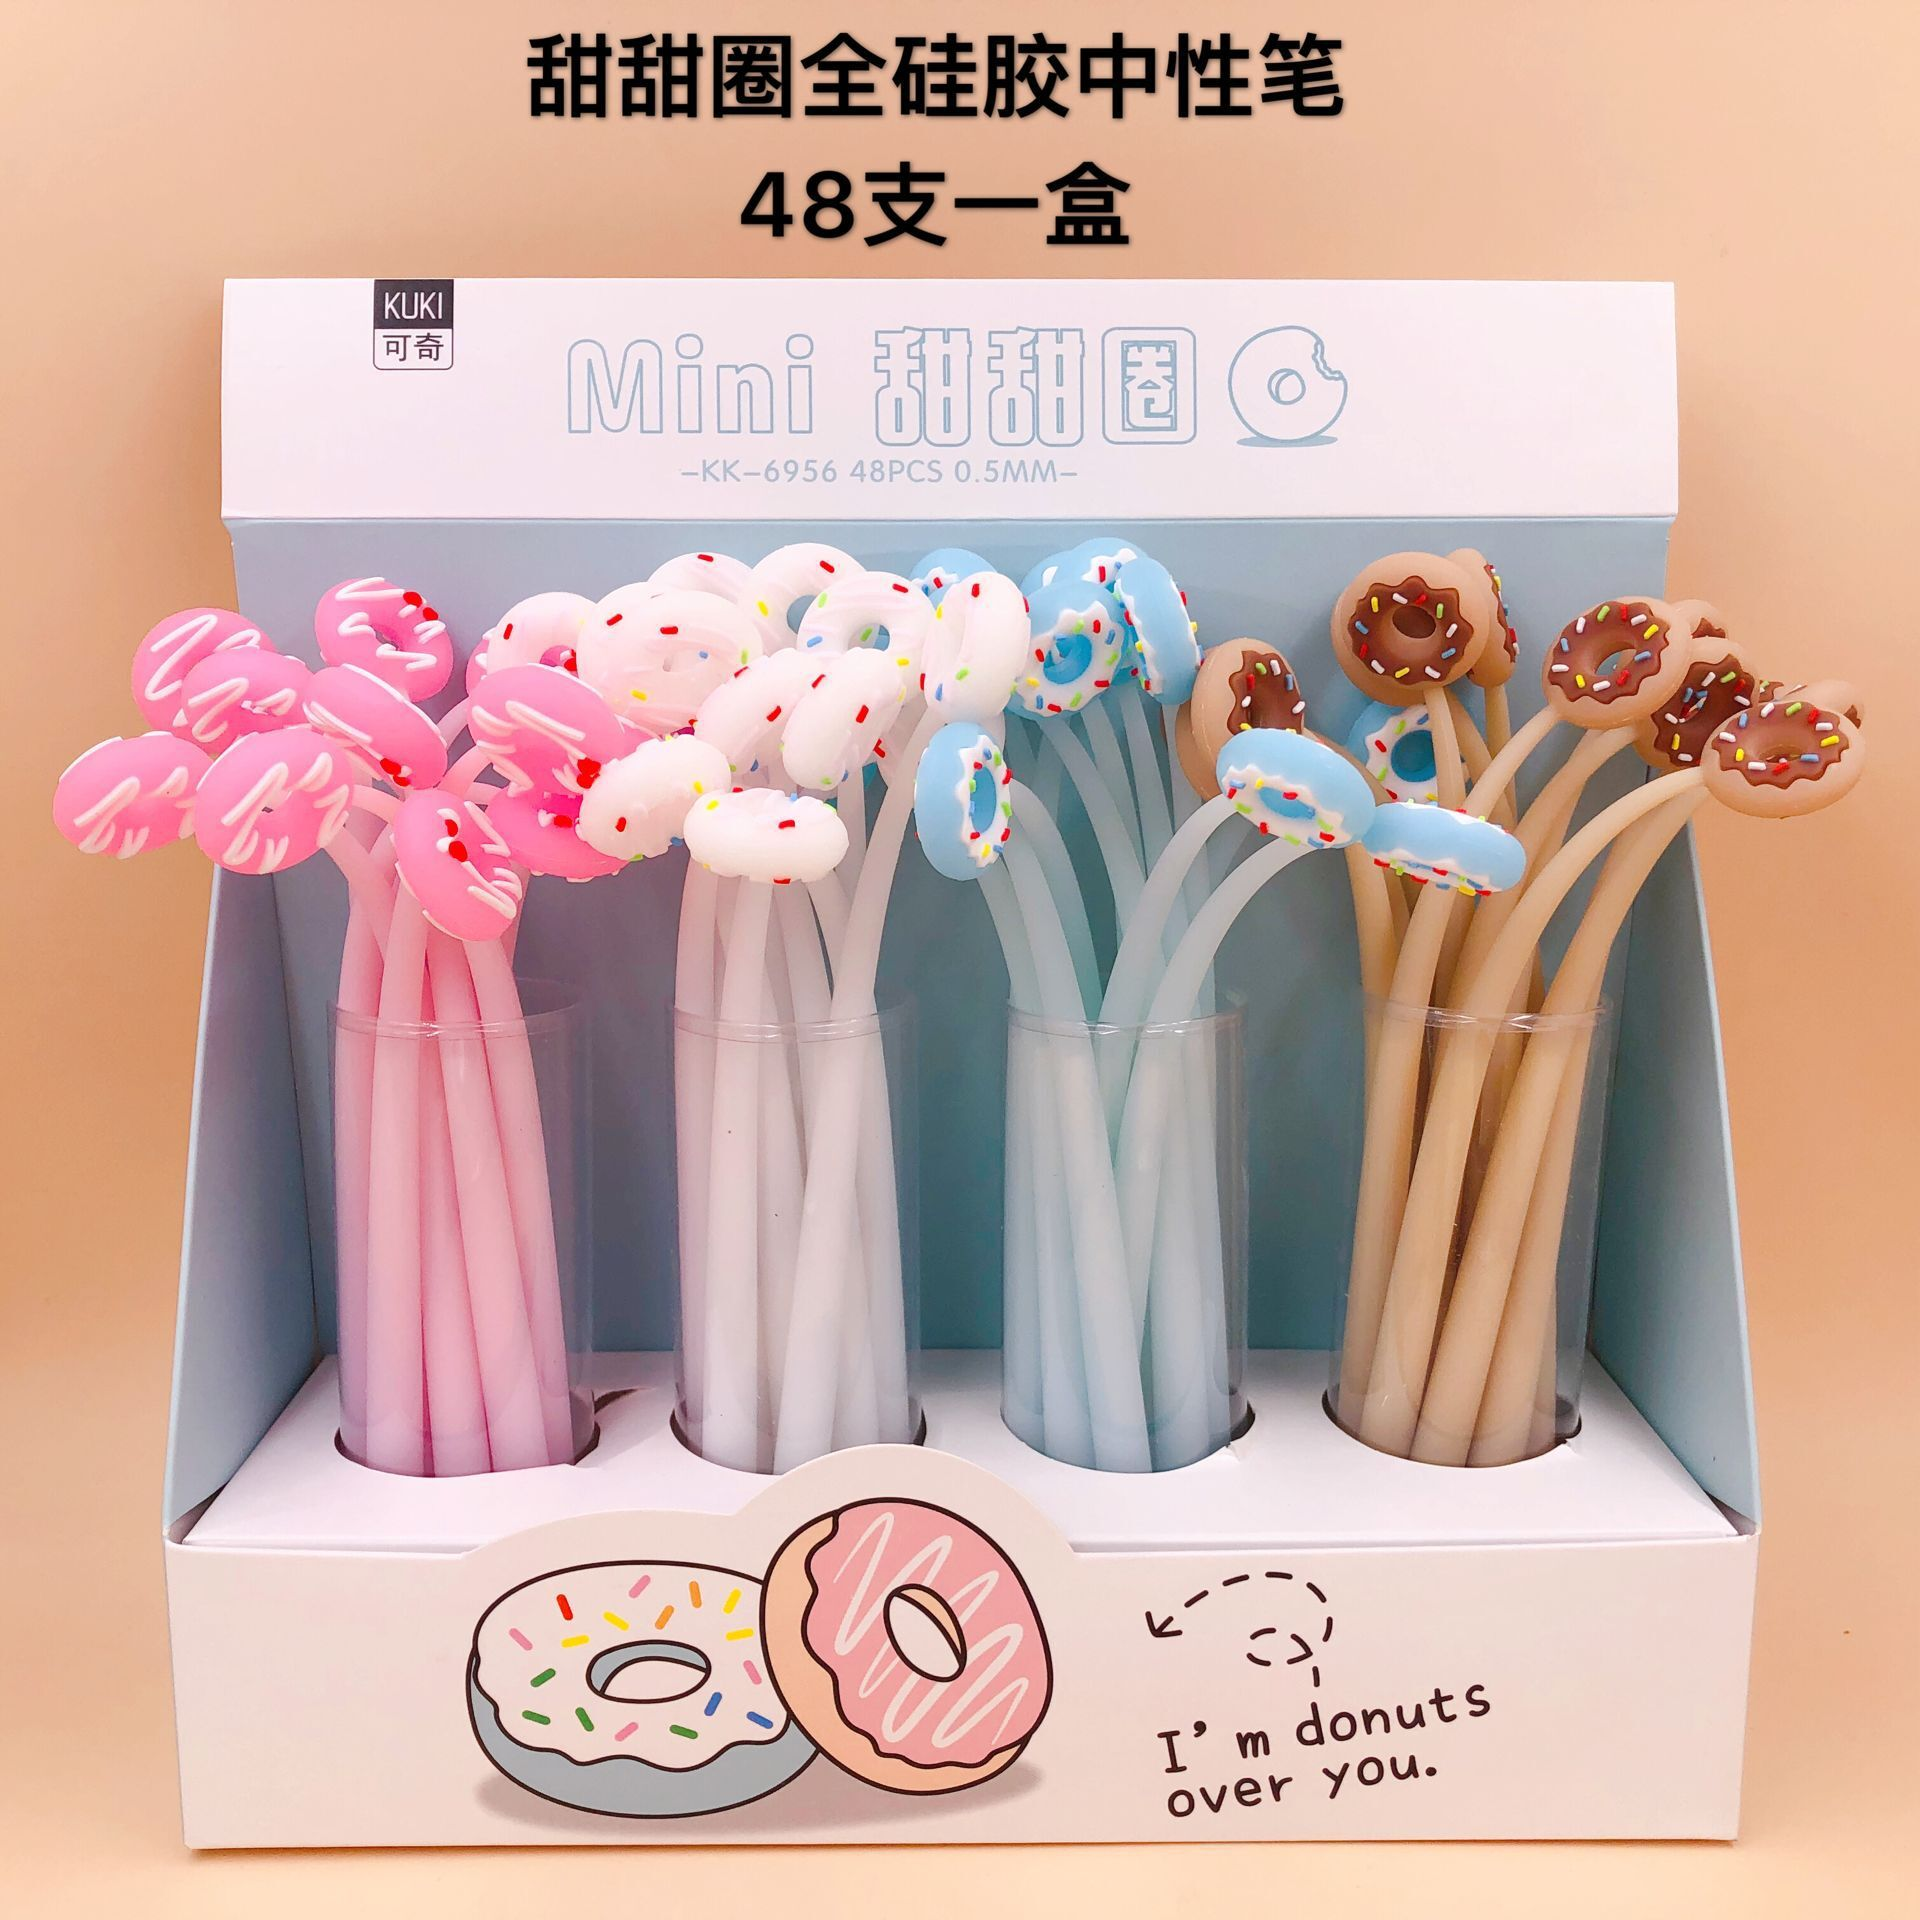 48 Pcs/set 1set is 1box Gel Pens Donut Black Colored Gel-inkpens for Writing Gel Pen Cute Stationery 0.5mm48 Pcs/set 1set is 1box Gel Pens Donut Black Colored Gel-inkpens for Writing Gel Pen Cute Stationery 0.5mm